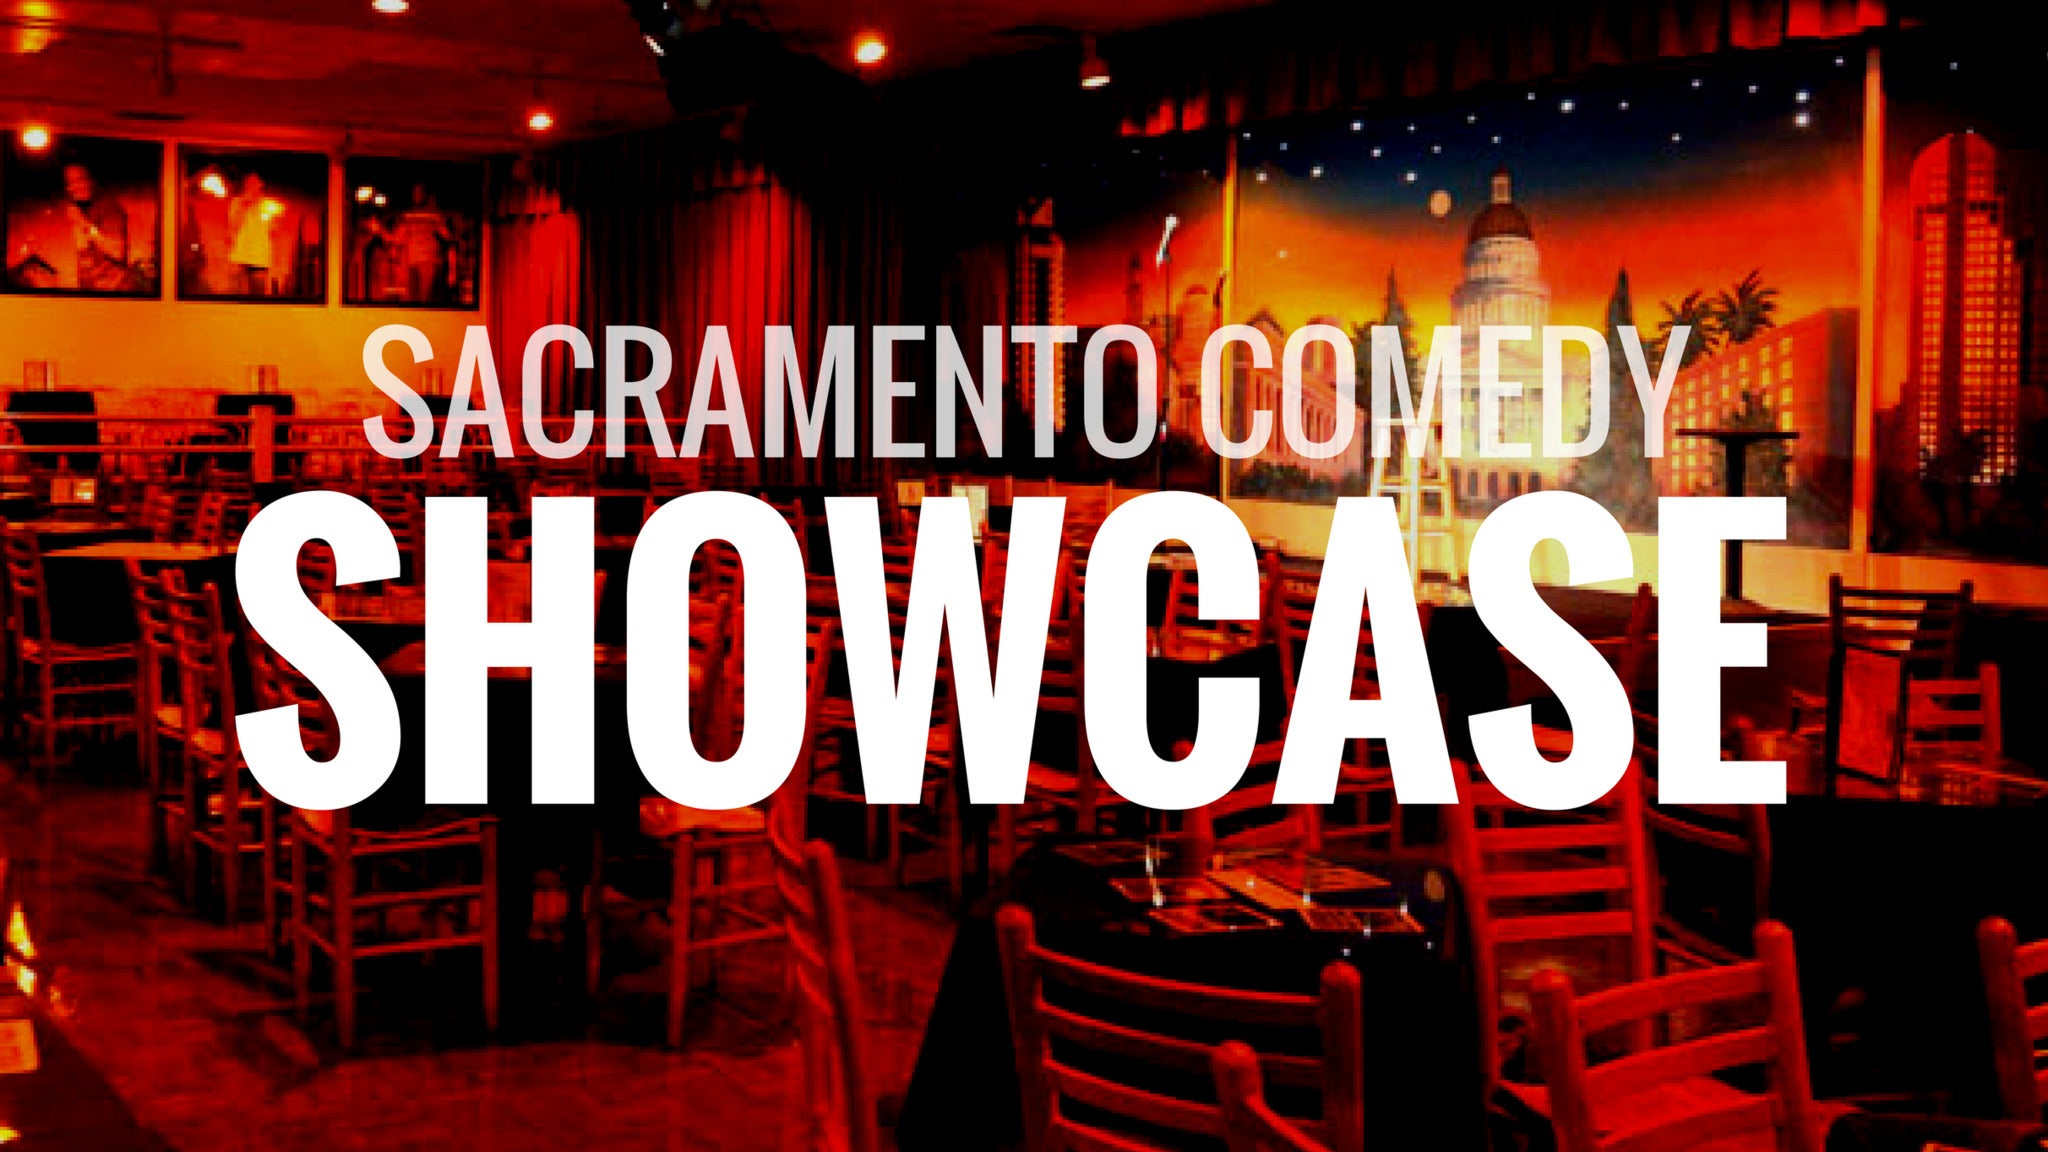 Sacramento Comedy Showcase